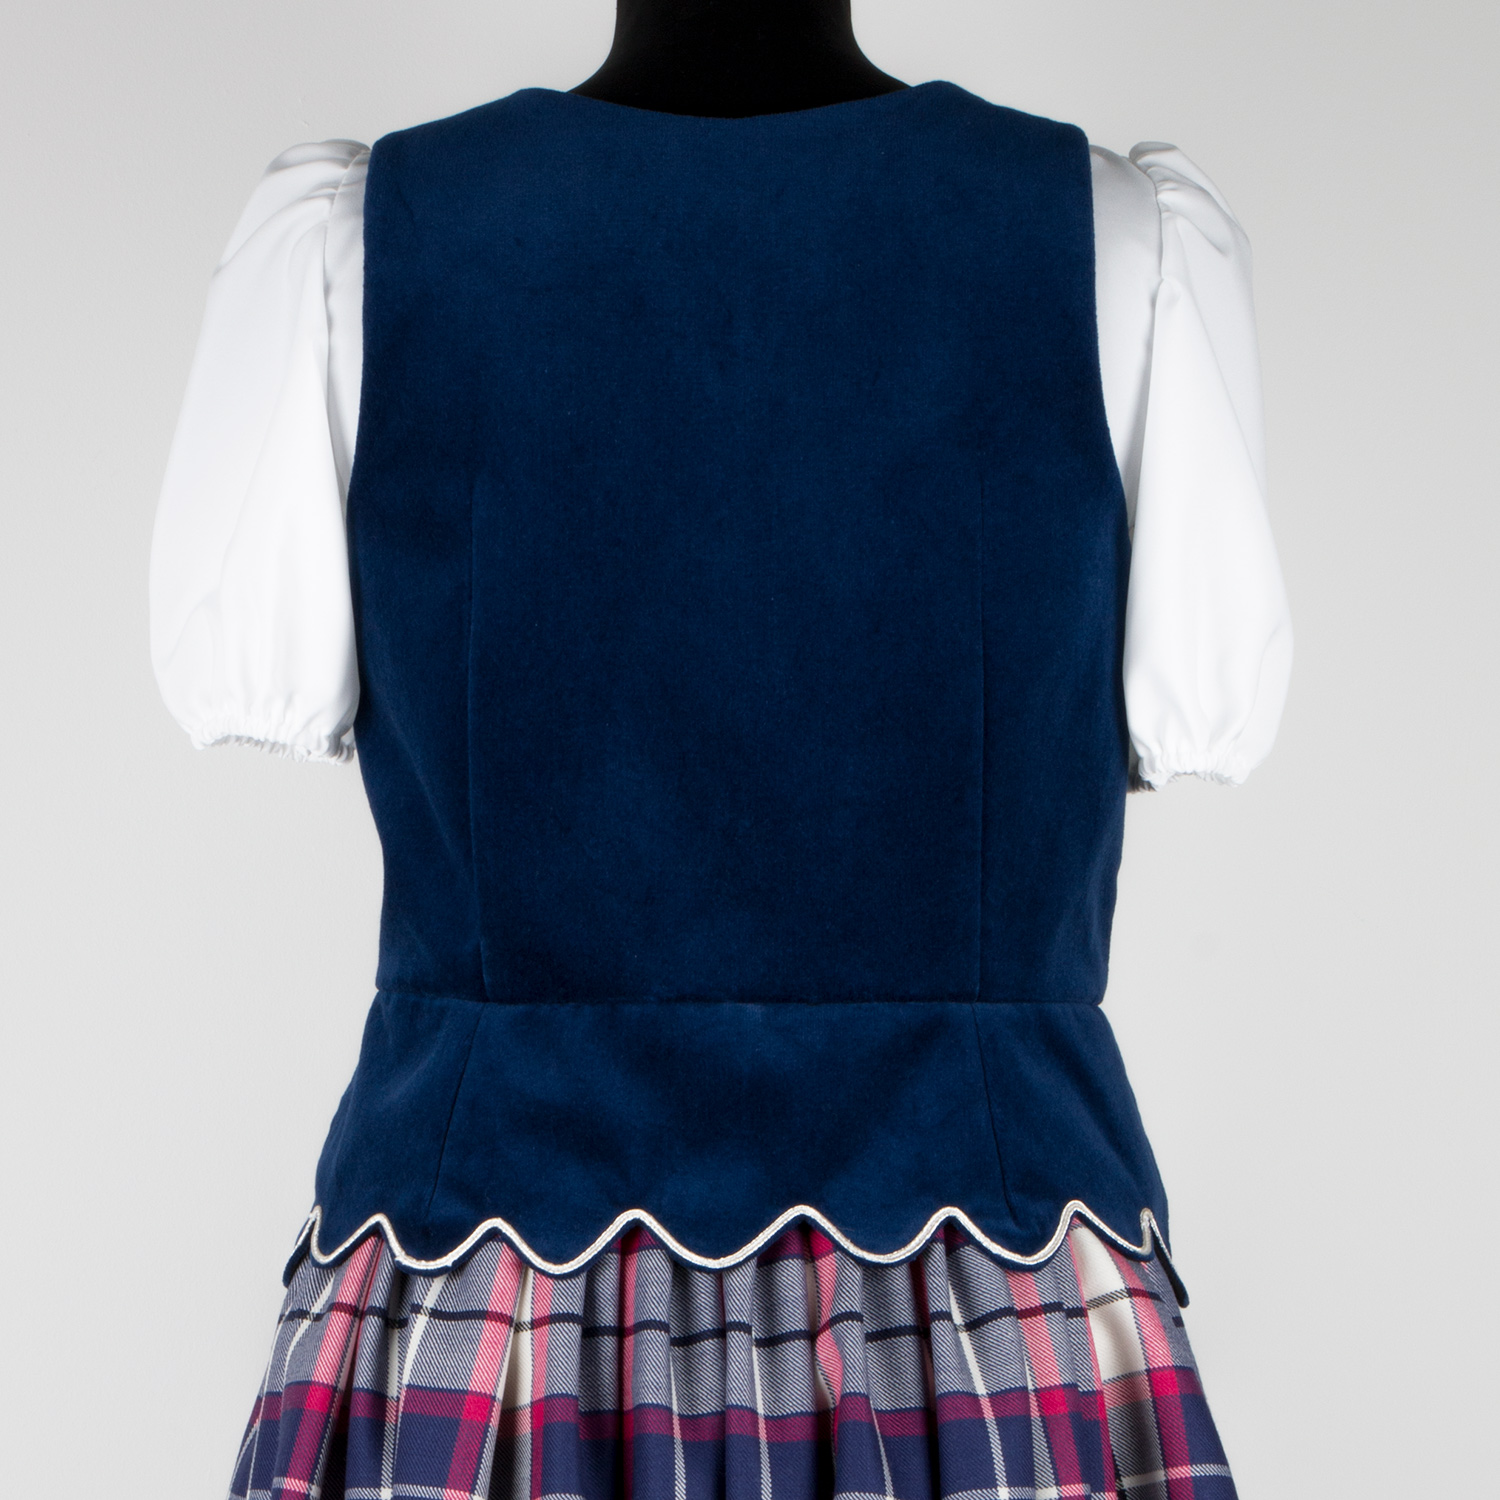 Aboyne Vest in Marine with scallopes